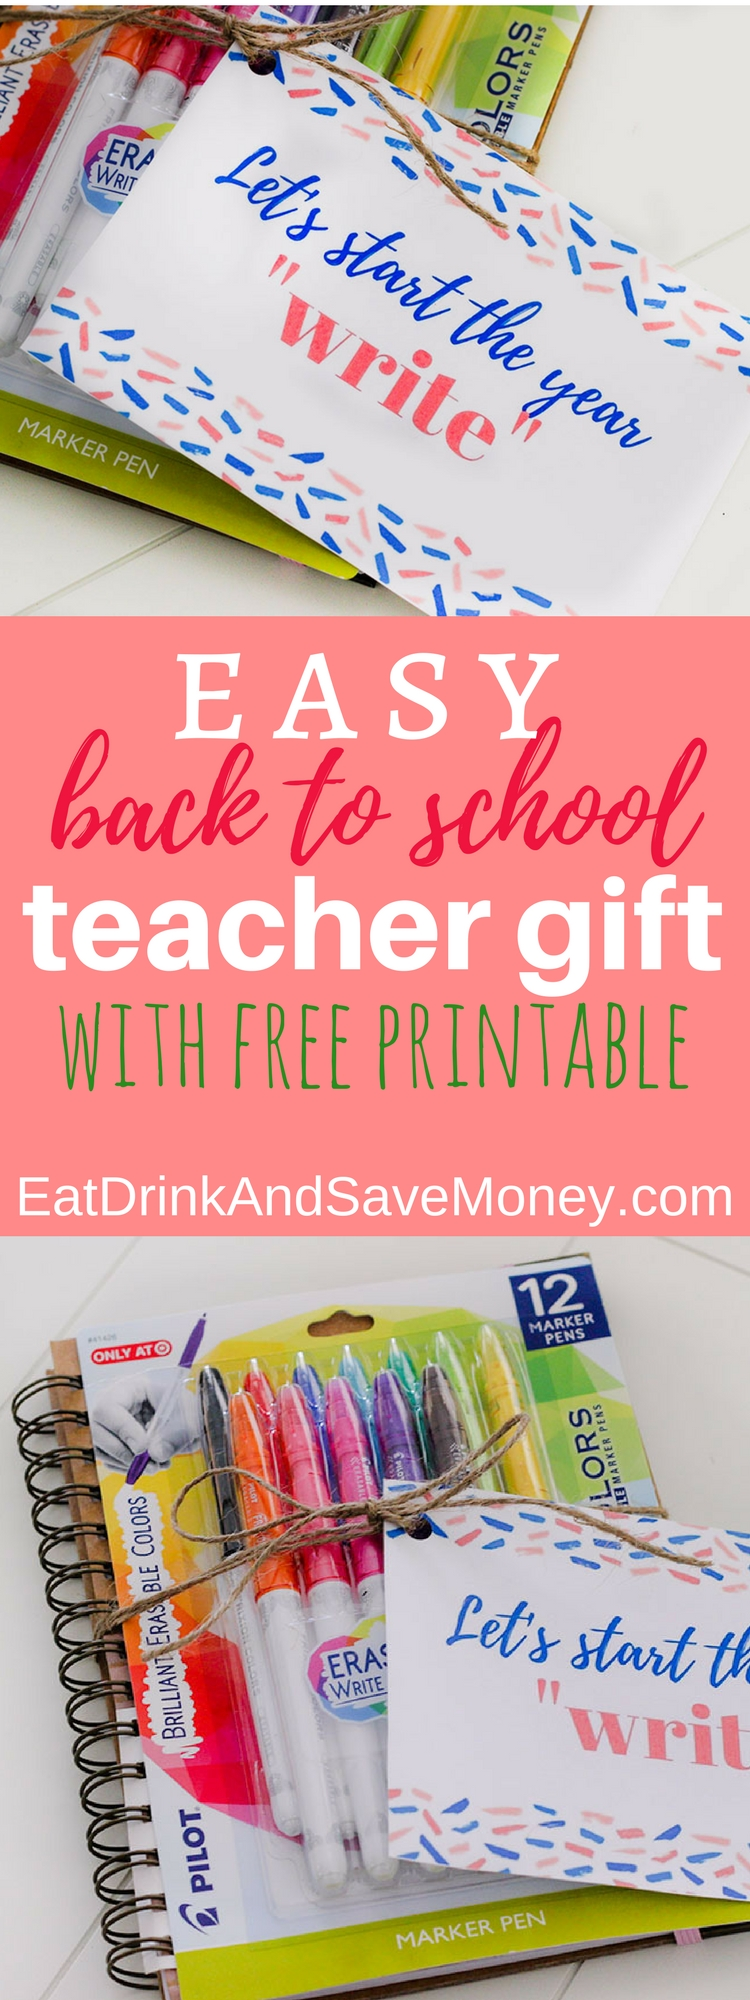 Easy back to school teacher gift with free printable_ check out this easy printable gift tag to make your own gift for teachers.